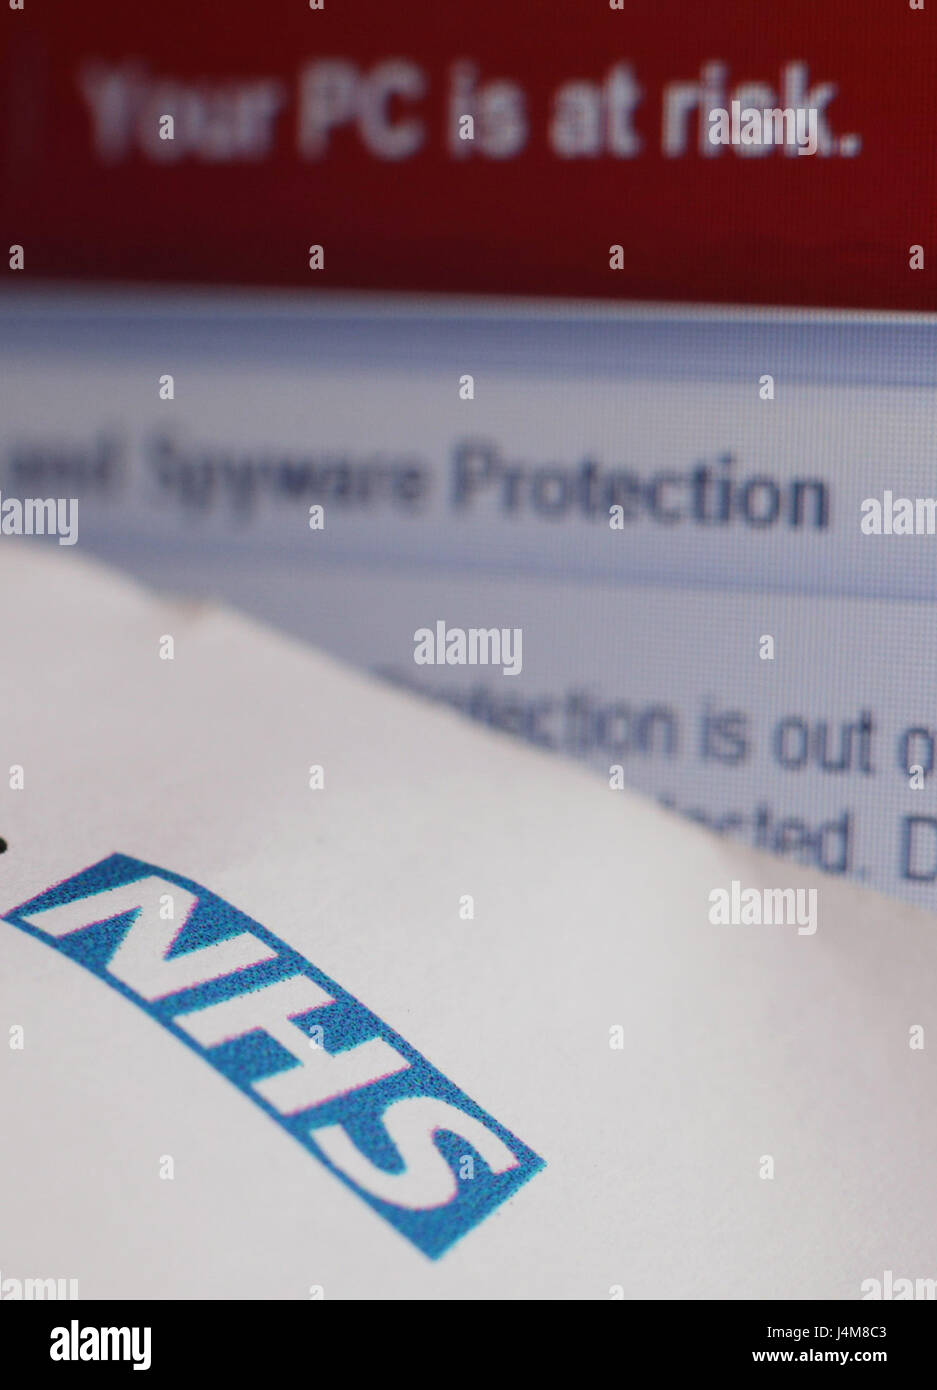 A patient appointment letter from an NHS hospital, next to a virus and spyware warning message on a laptop screen - Stock Image